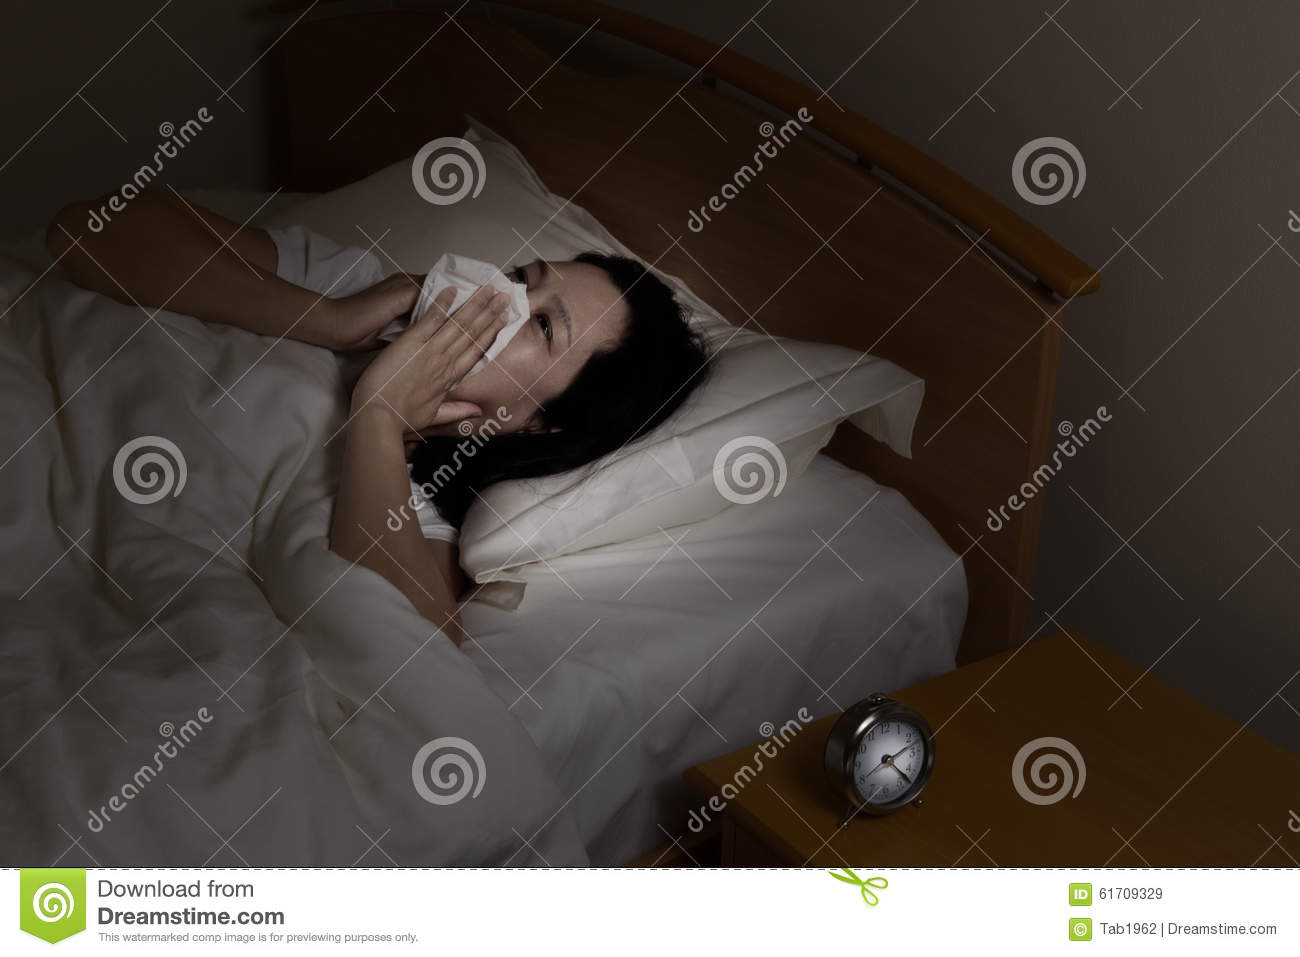 Bedroom at night time - Mature Woman Sick While Lying In Bed At Night Time Royalty Free Stock Images